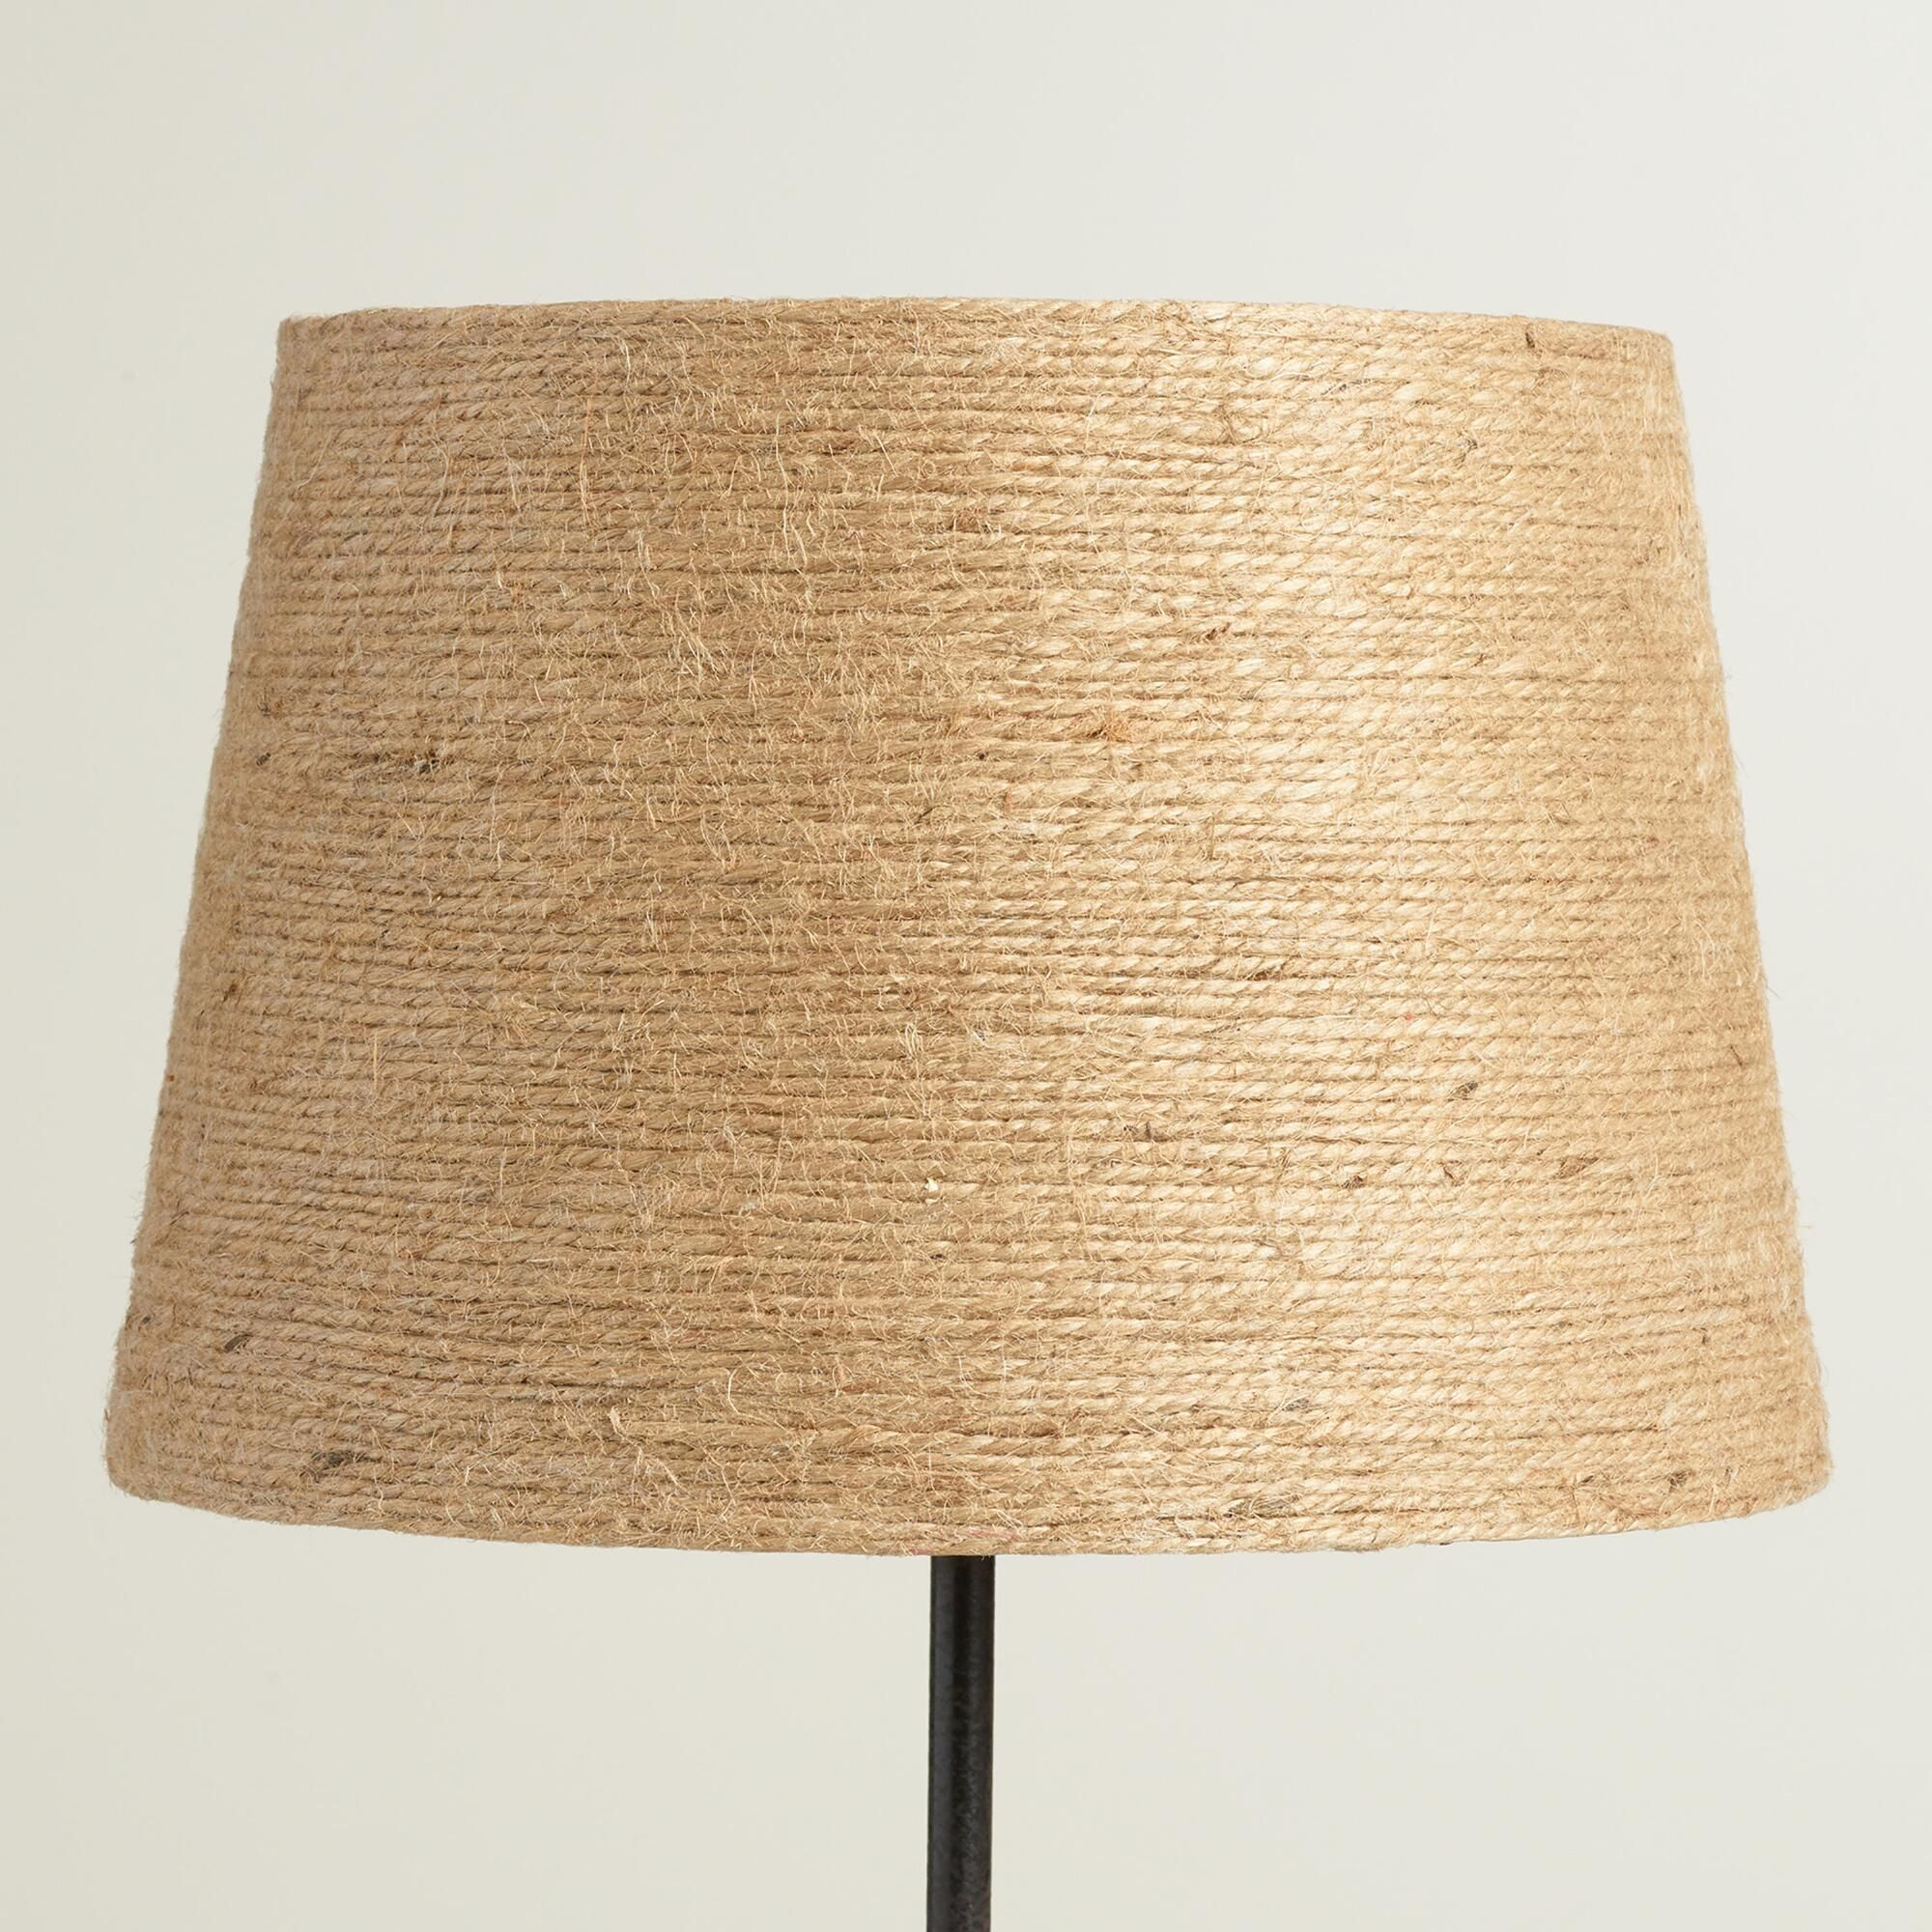 Twine Wrapped Accent Lamp Shade Lamp Shade Lamp Accent Lamp